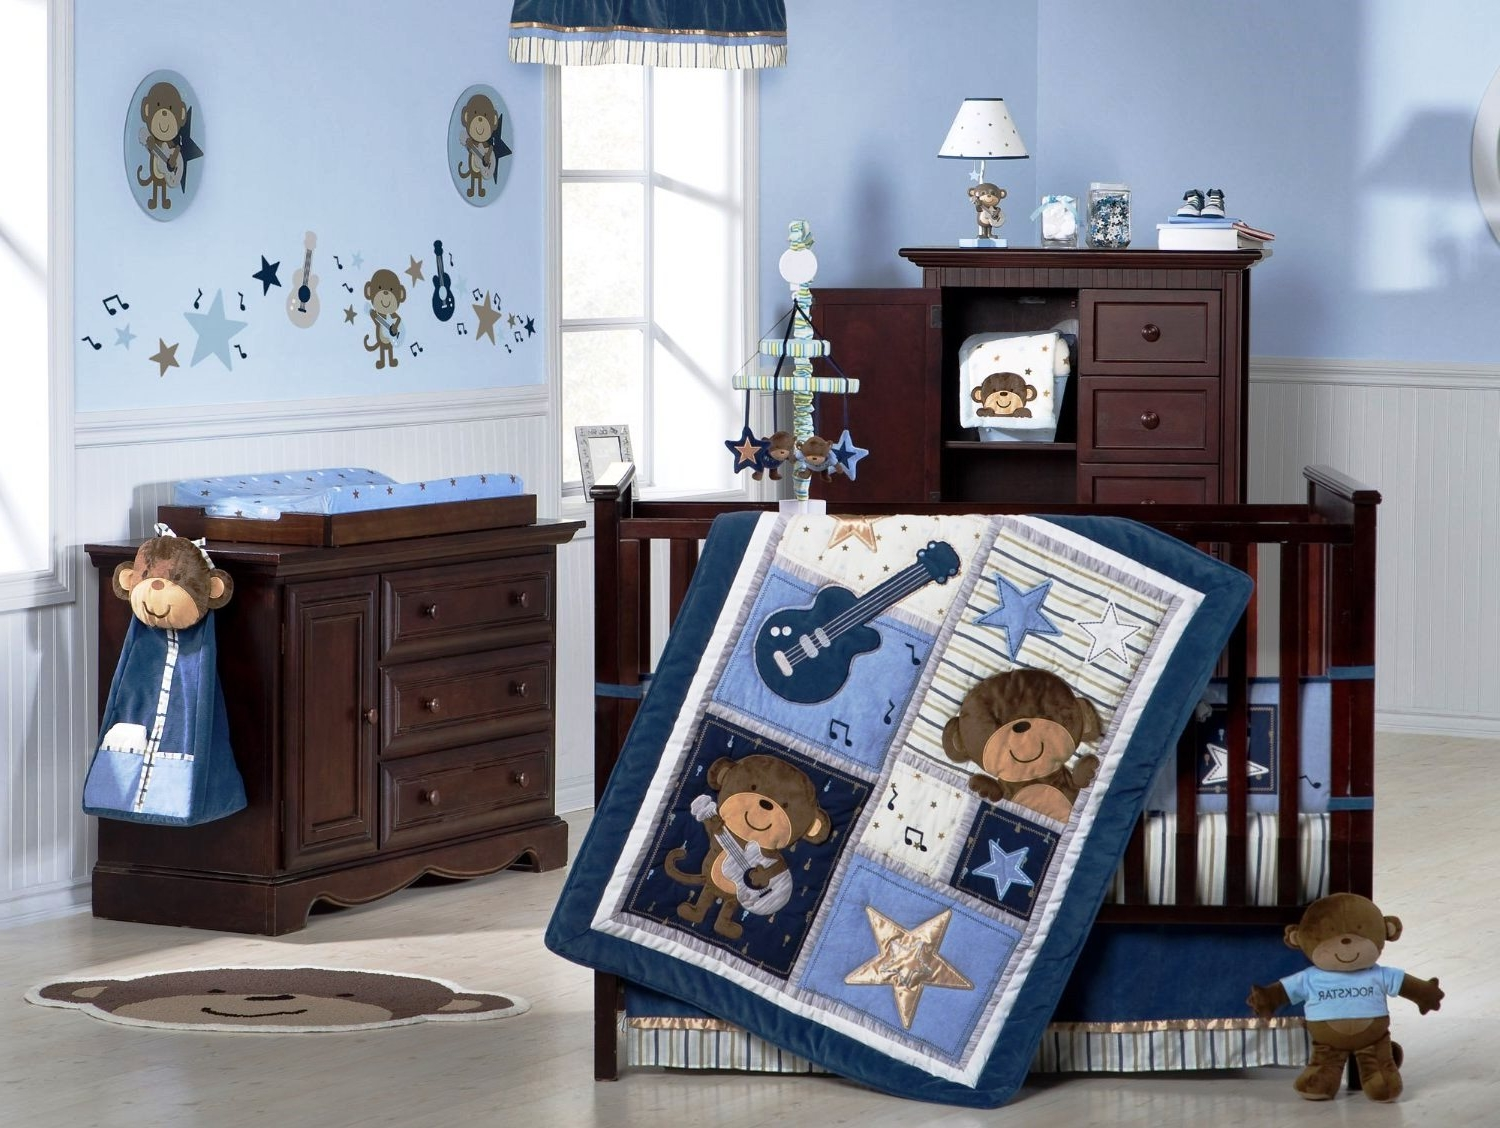 nursery room decor theme with cute monkey pictures wood made baby